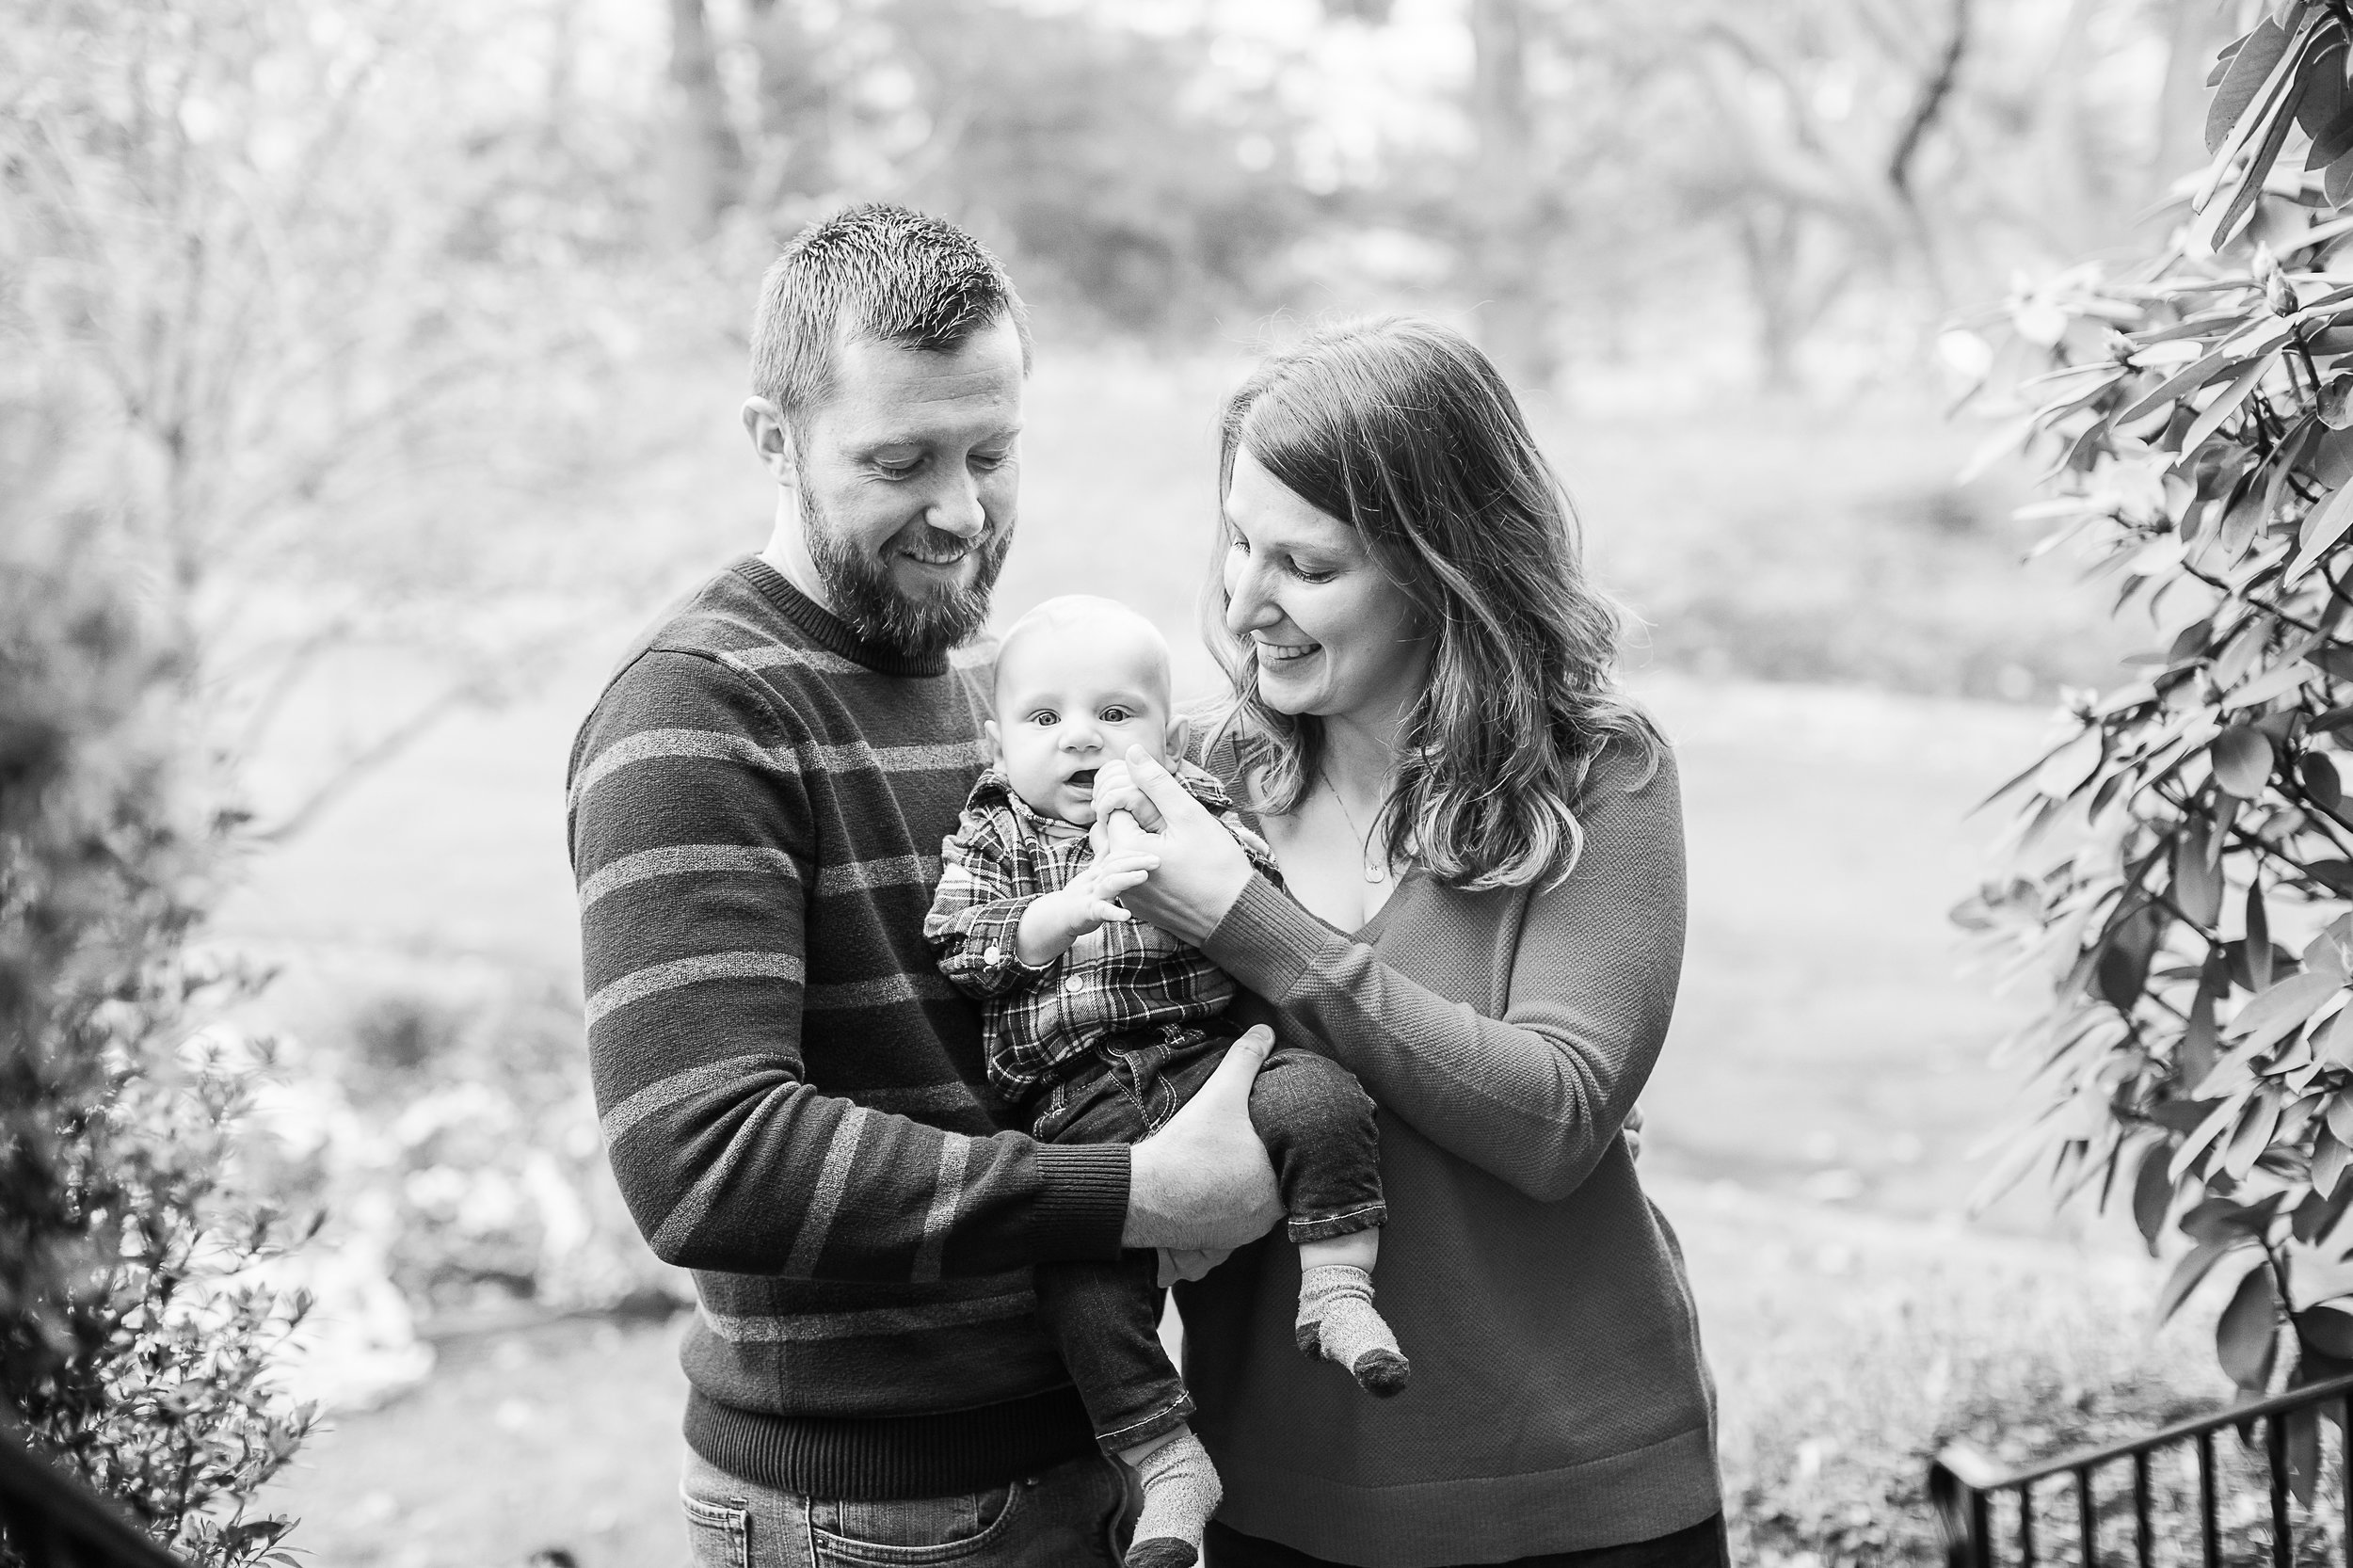 01 a-26-Teddy-Family-Portrait-Kim-Pham-Clark-Photography.jpg